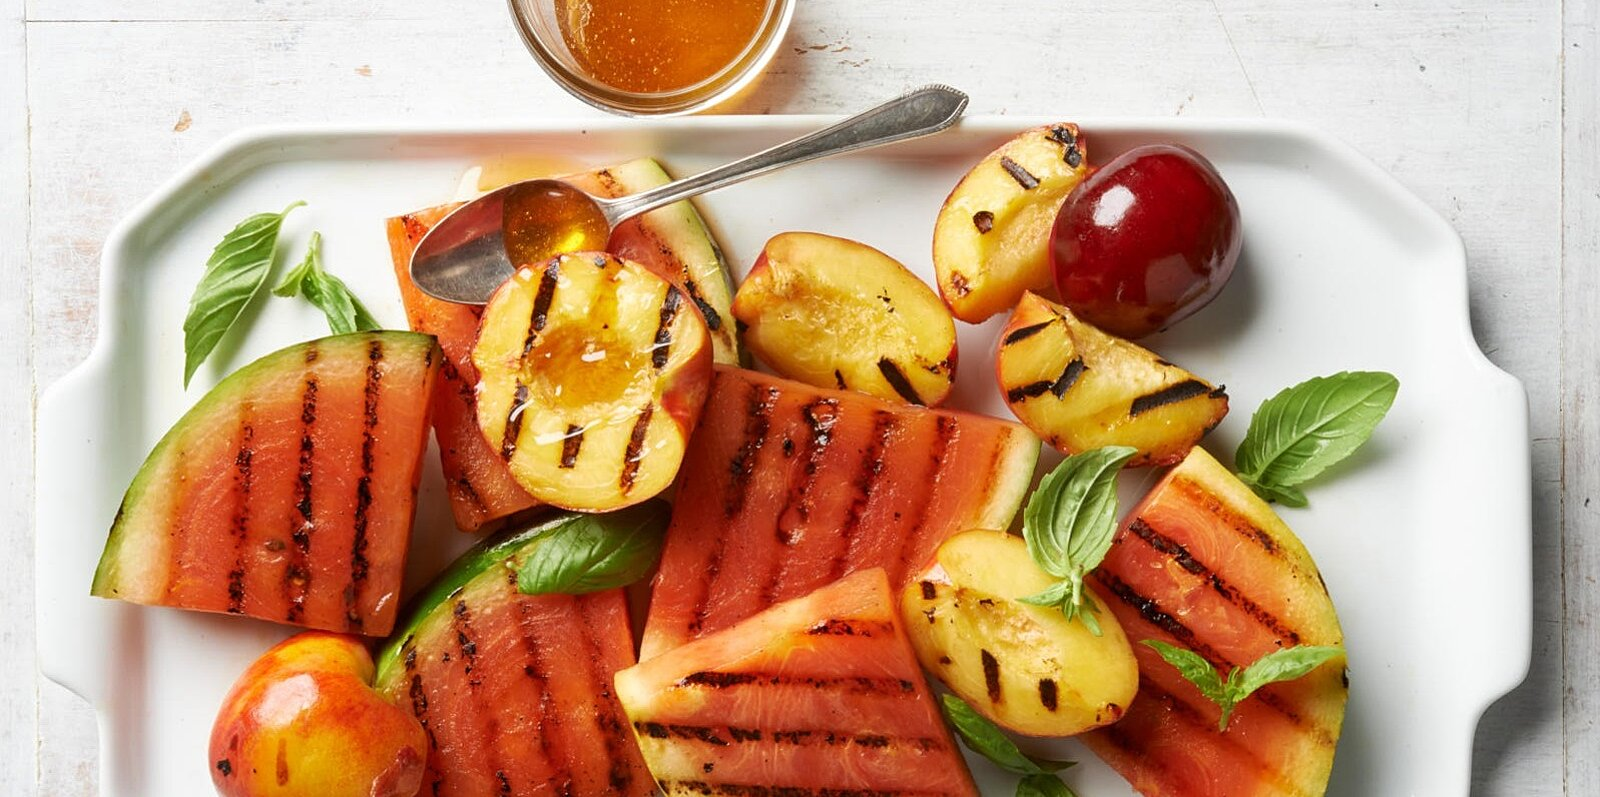 8 hot tips to make the best grilled fruit